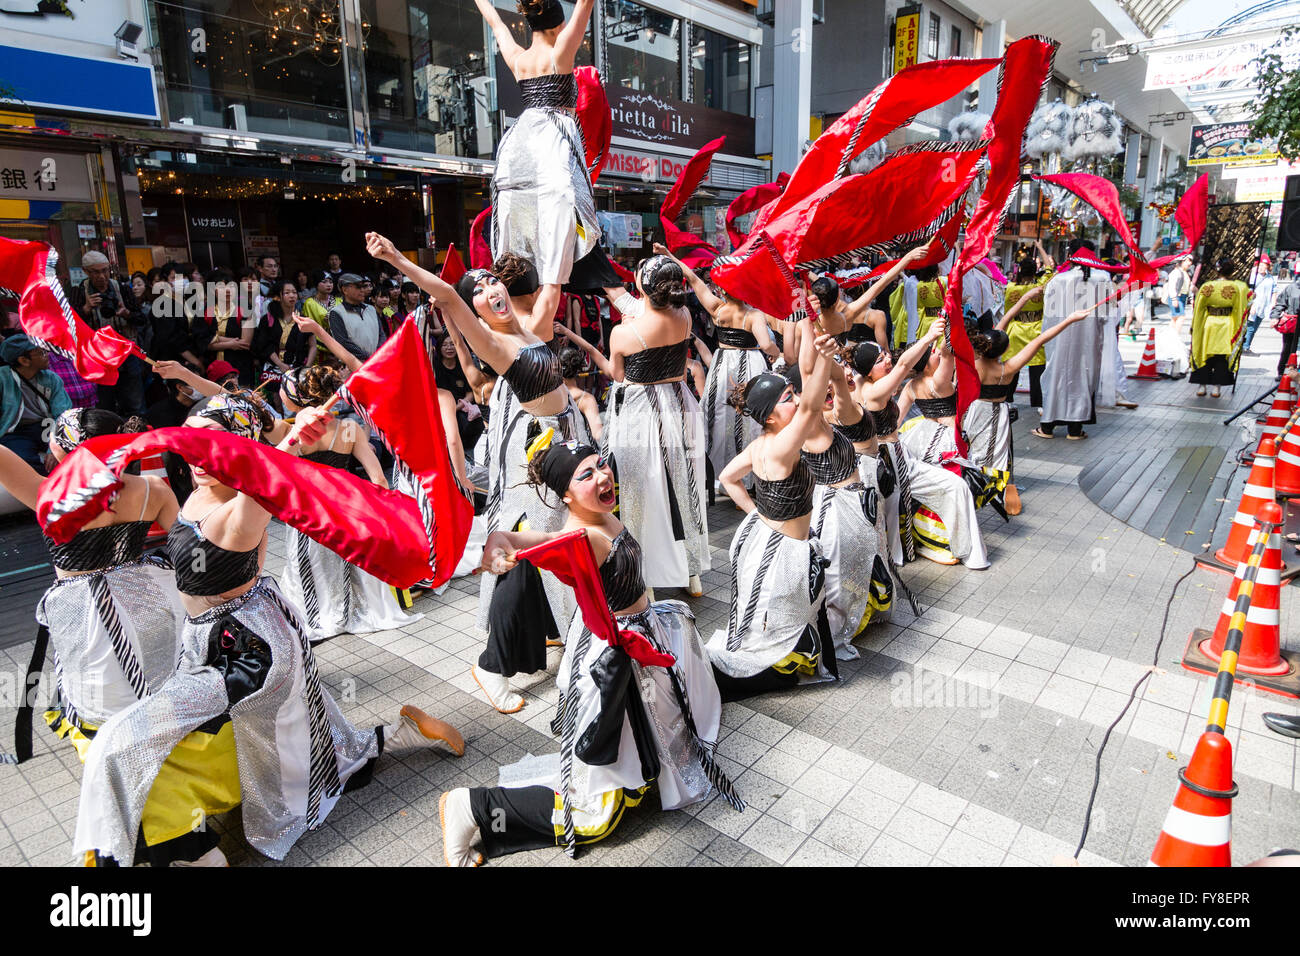 Japanese young women dance team in black and white costume formation dancing and swirling red streamers in shopping - Stock Image